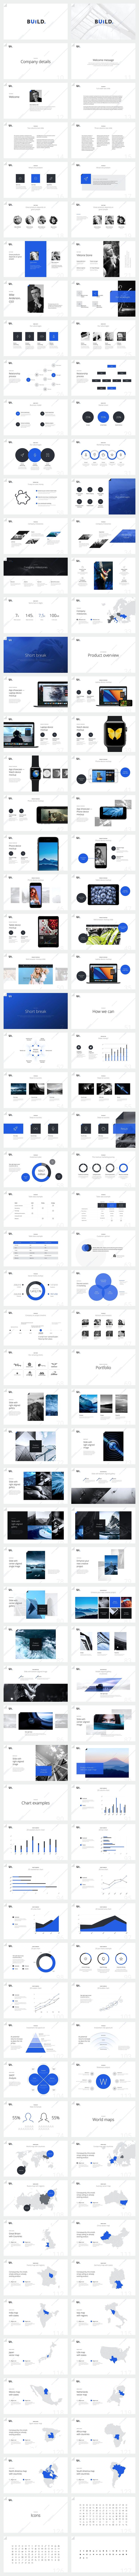 BUILD PowerPoint Template by ReworkMedia on @creativemarket